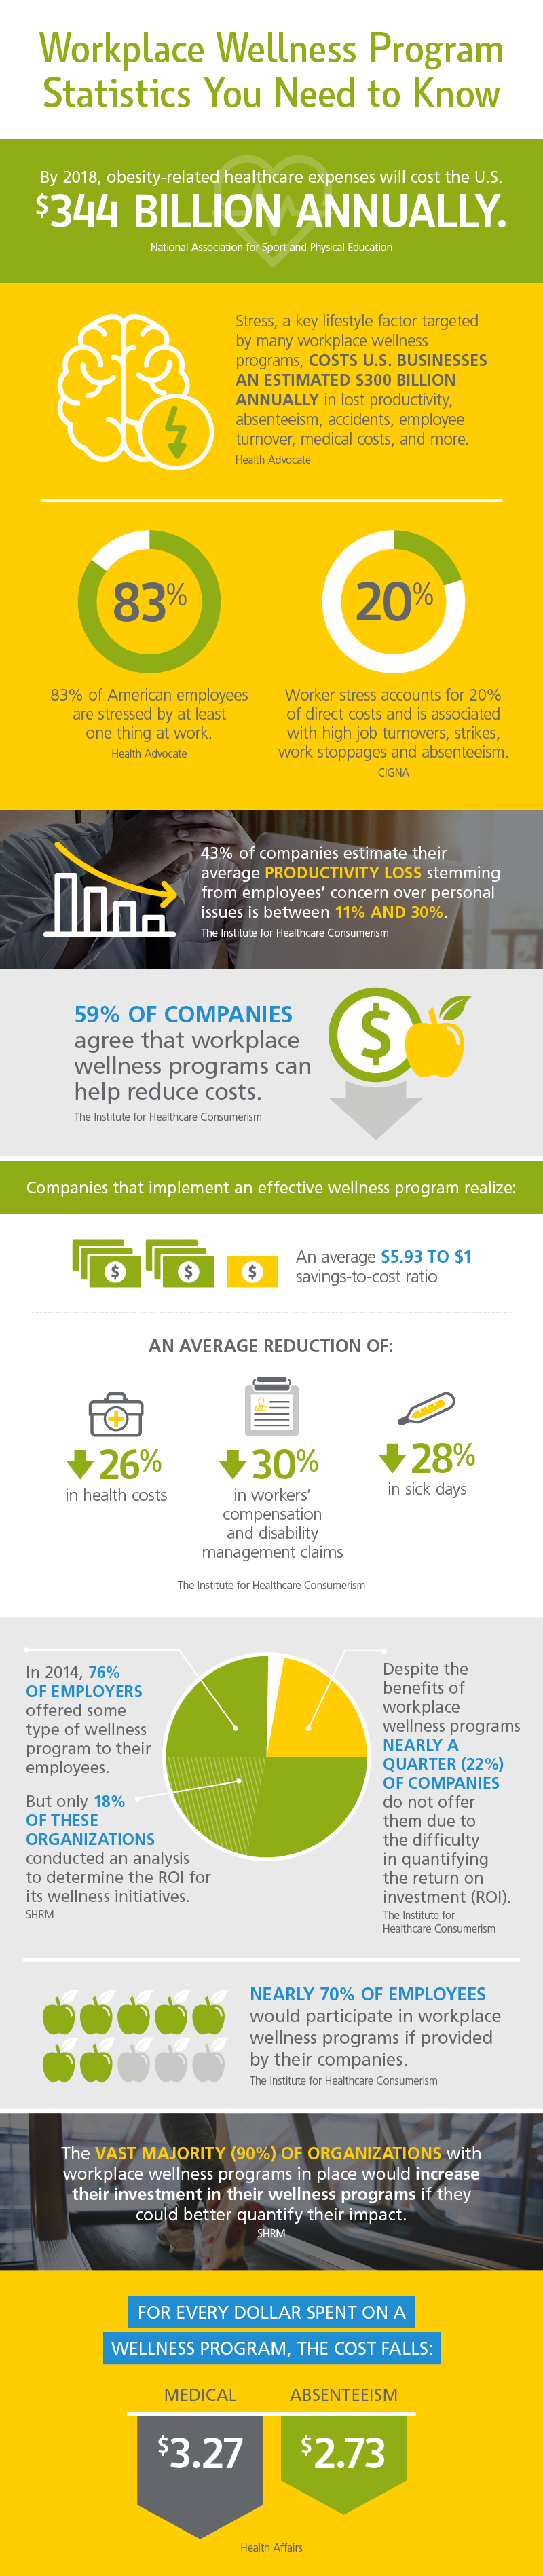 Workplace wellness program statistics you need to know infographic